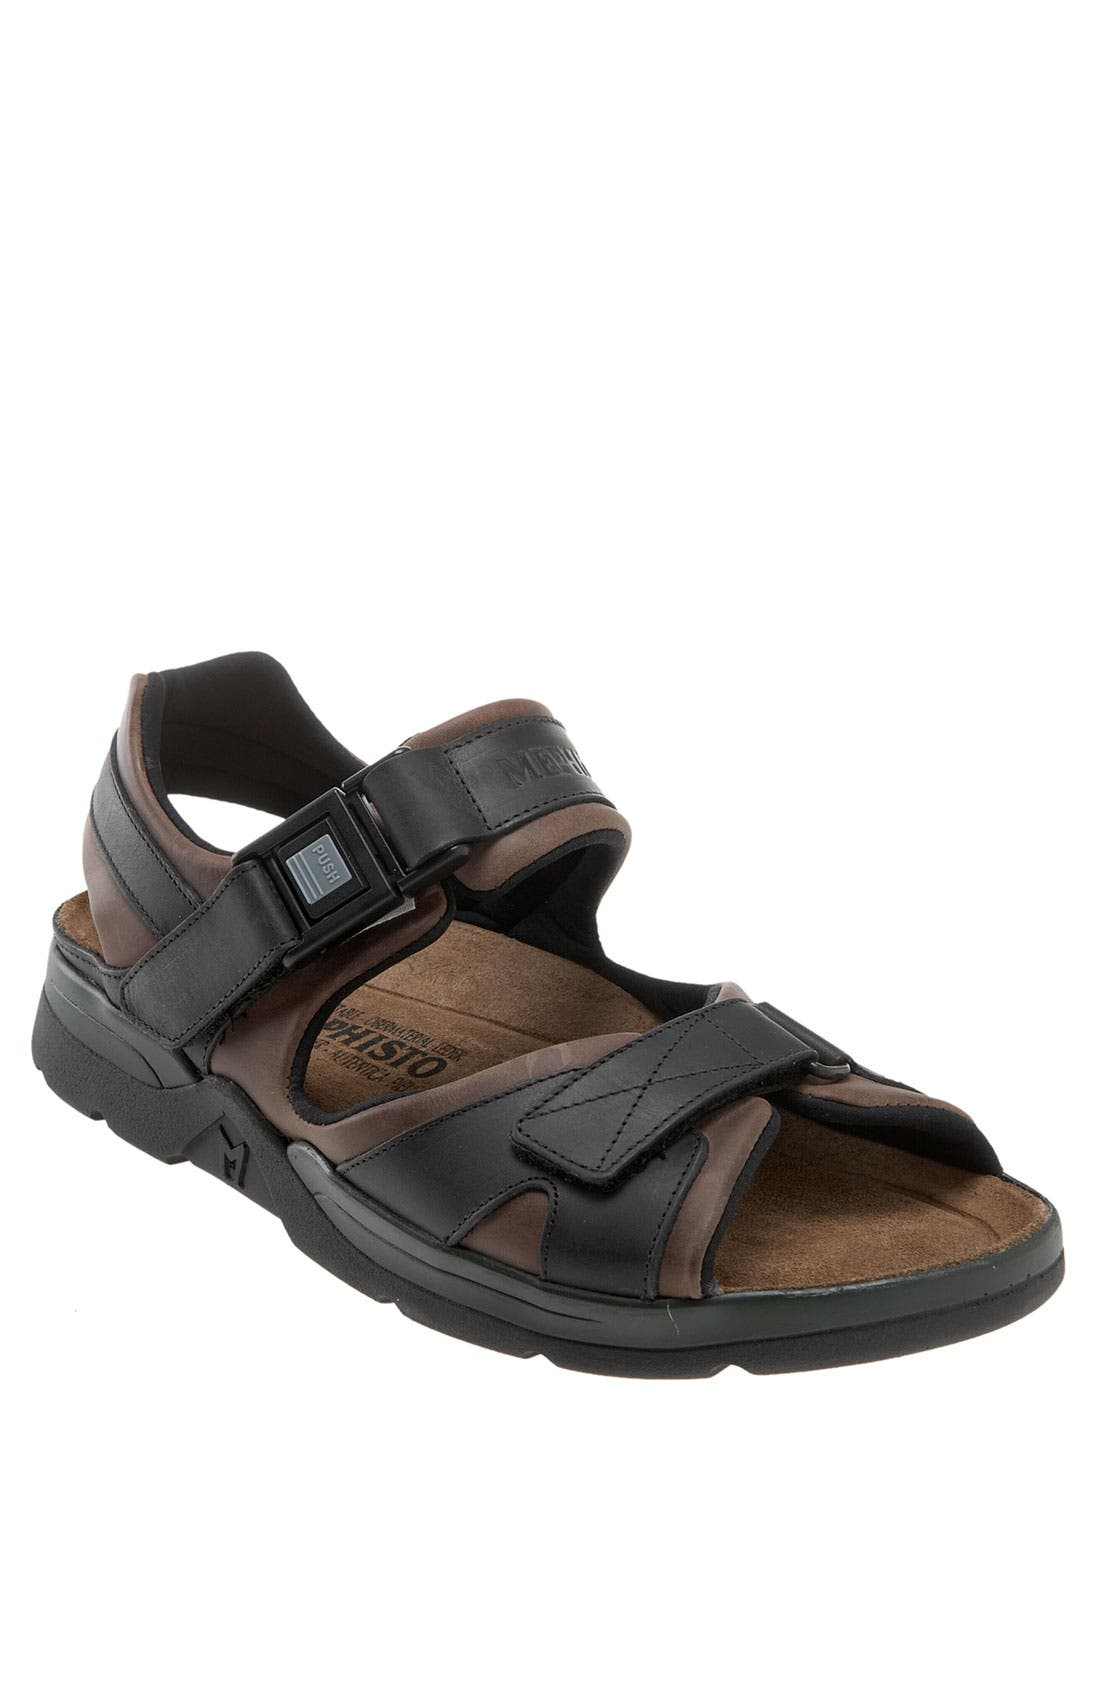 Alternate Image 1 Selected - Mephisto 'Shark' Sandal (Men)